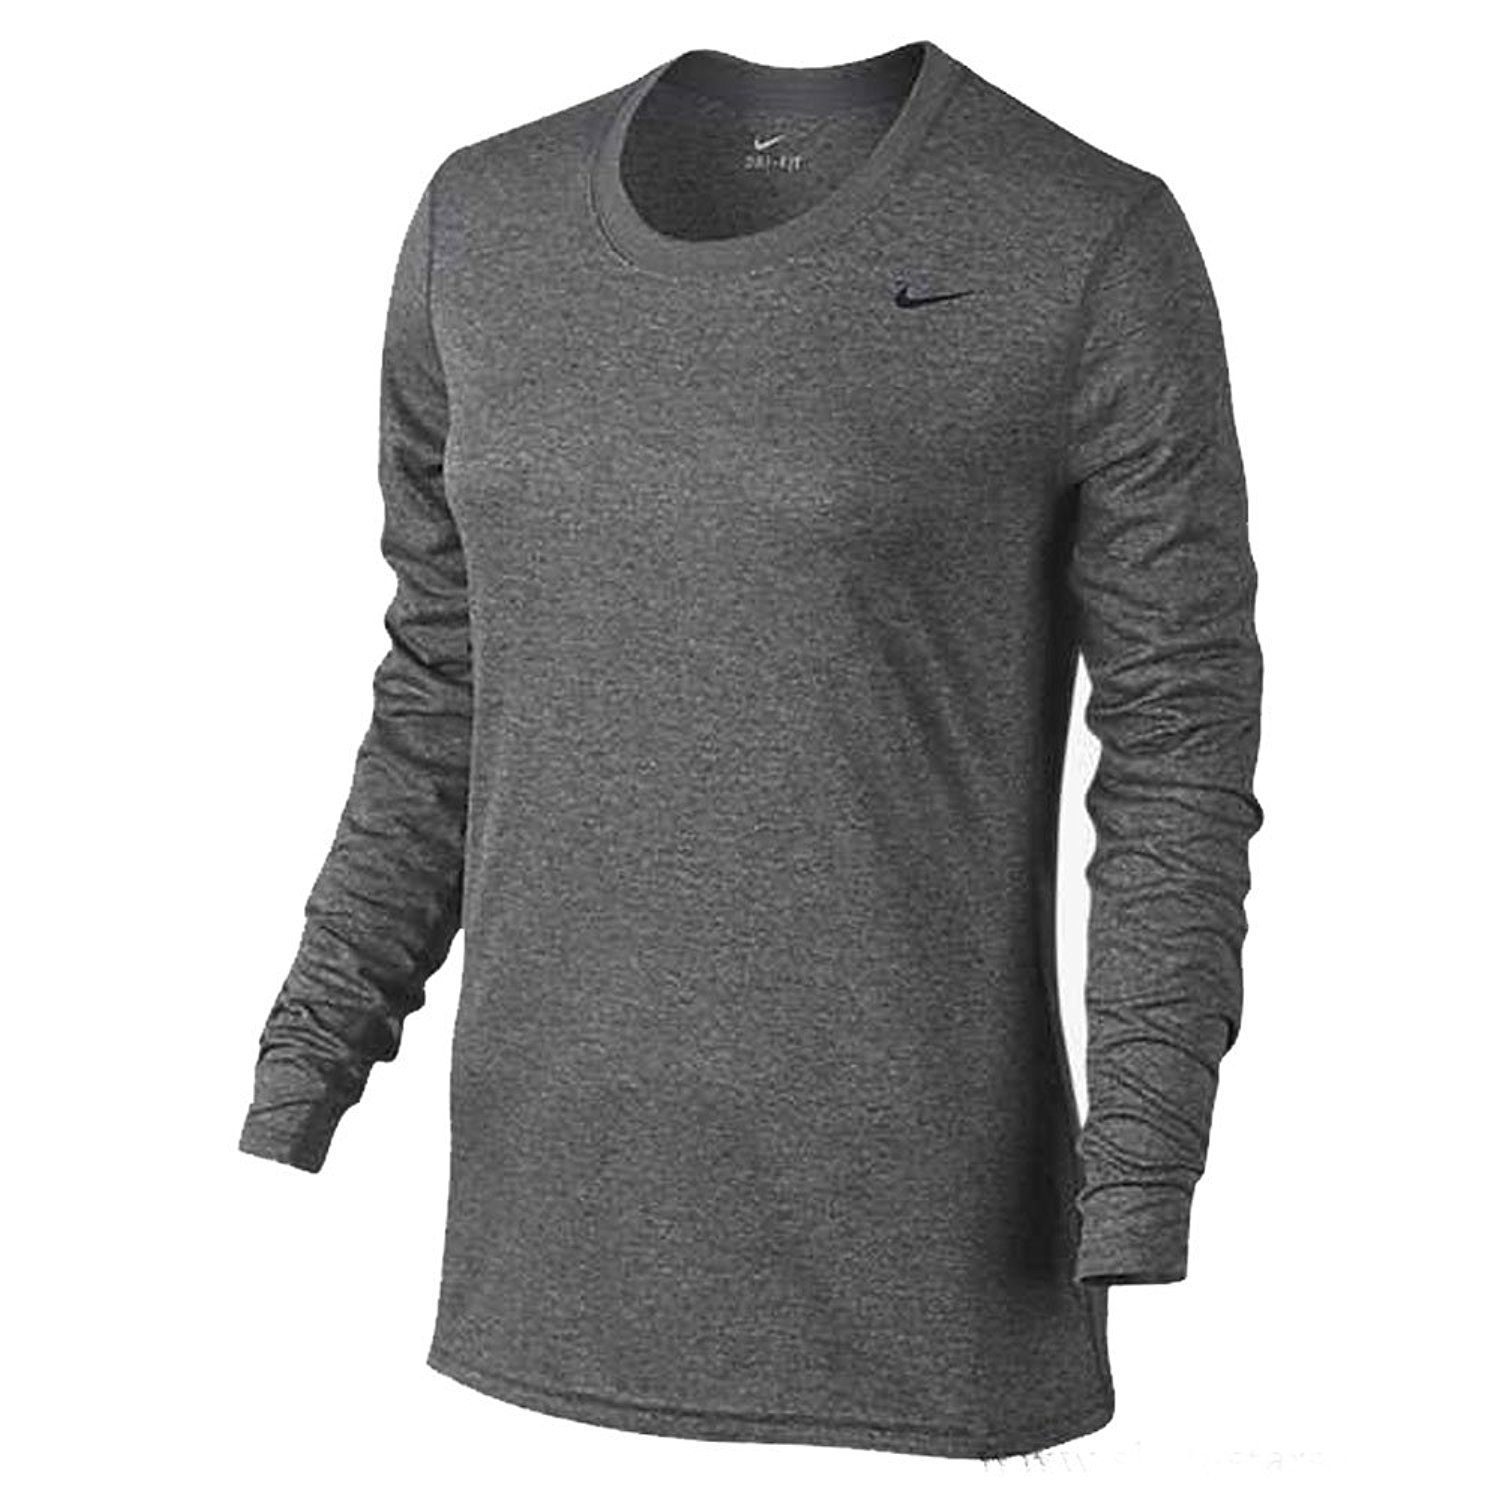 549241a5784b2 Nike Womens Dri-Fit Fitness Workout T-Shirt